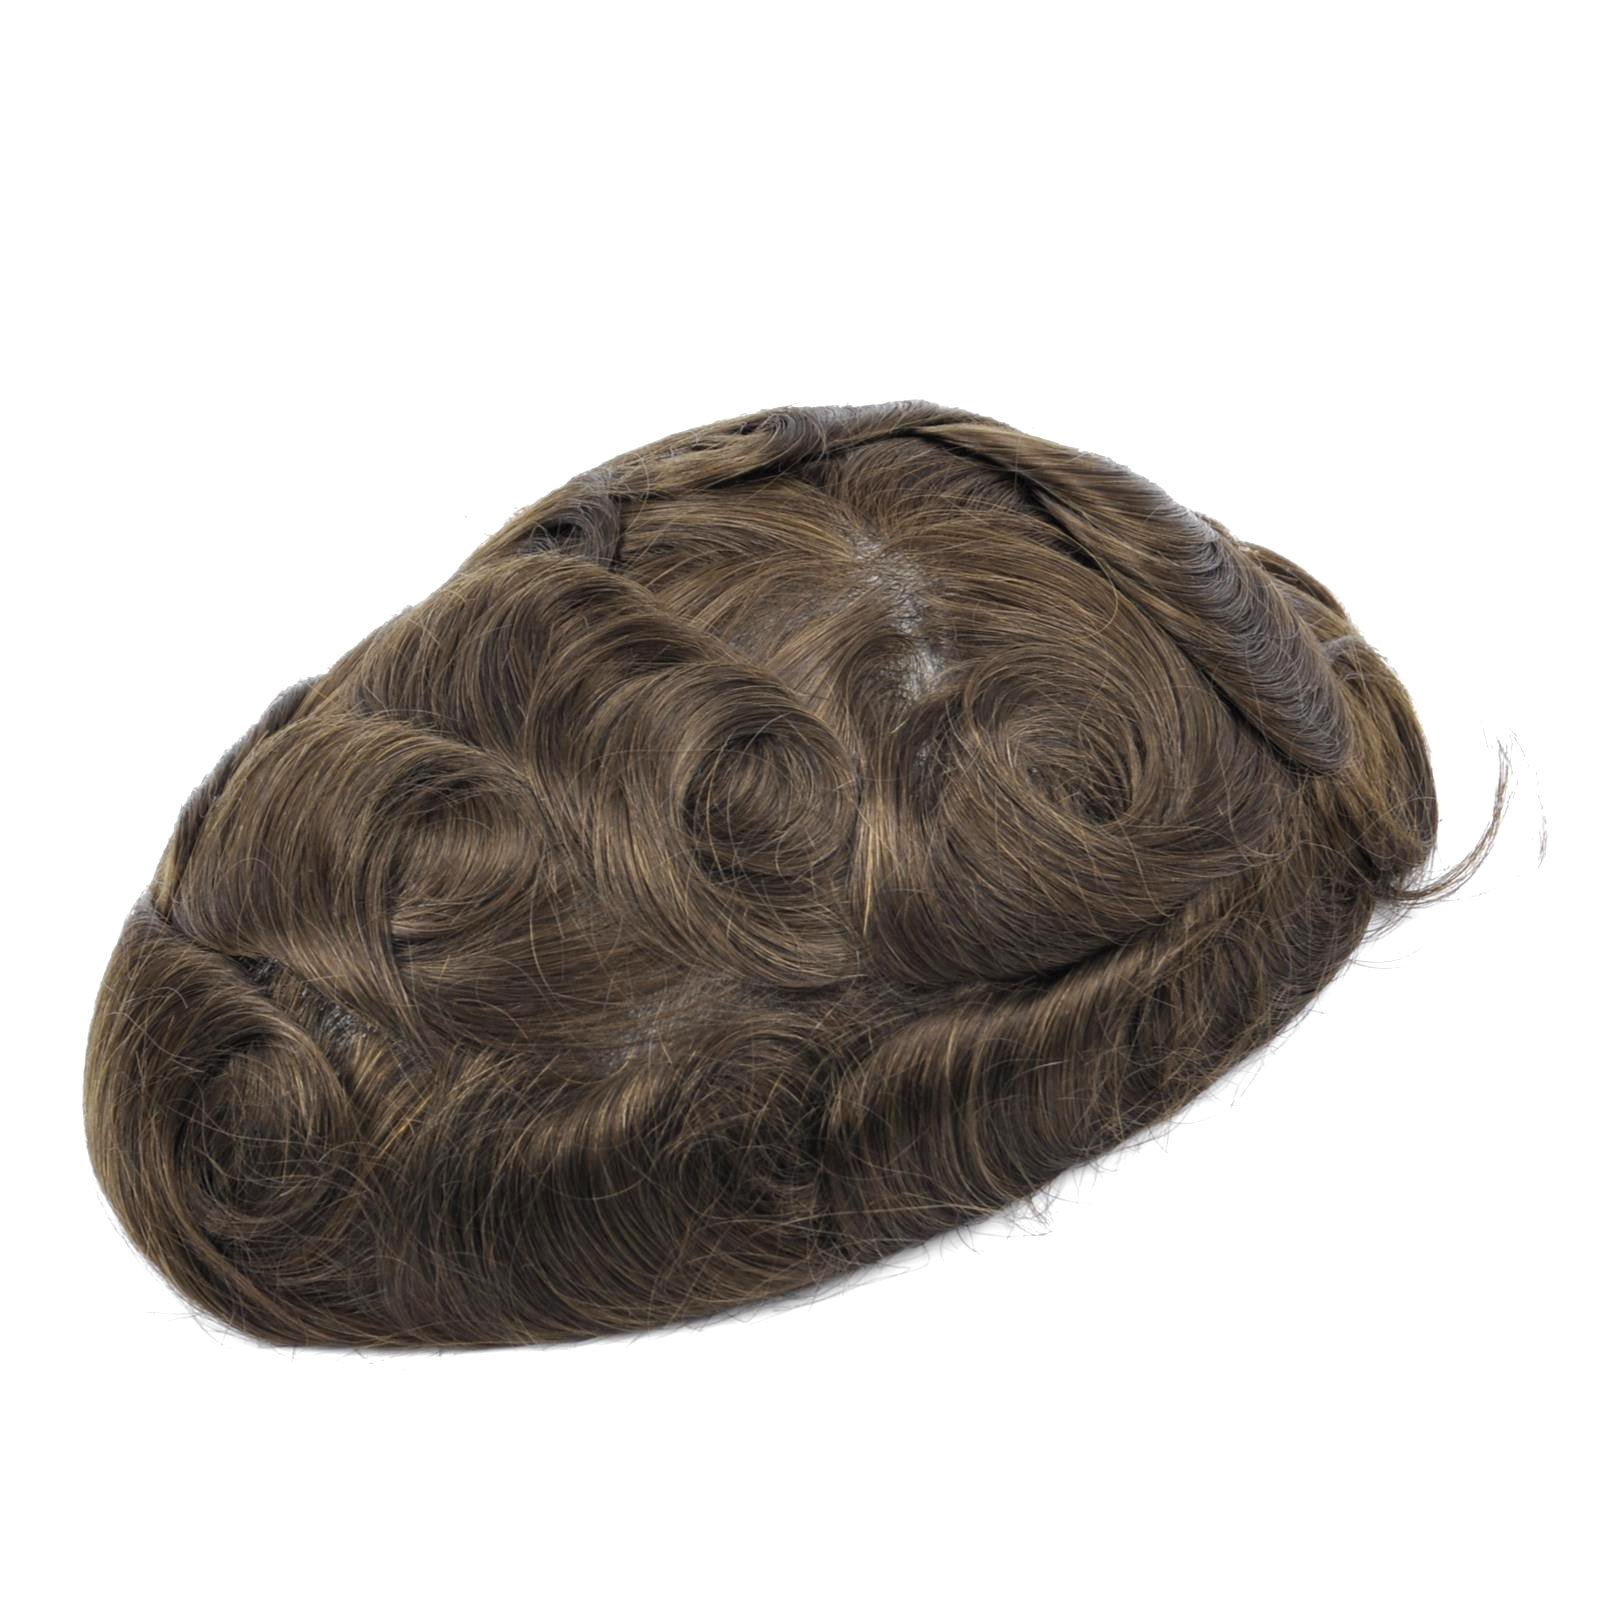 Mens Toupee Hairpiece NG Human Hair Systems ASH5#